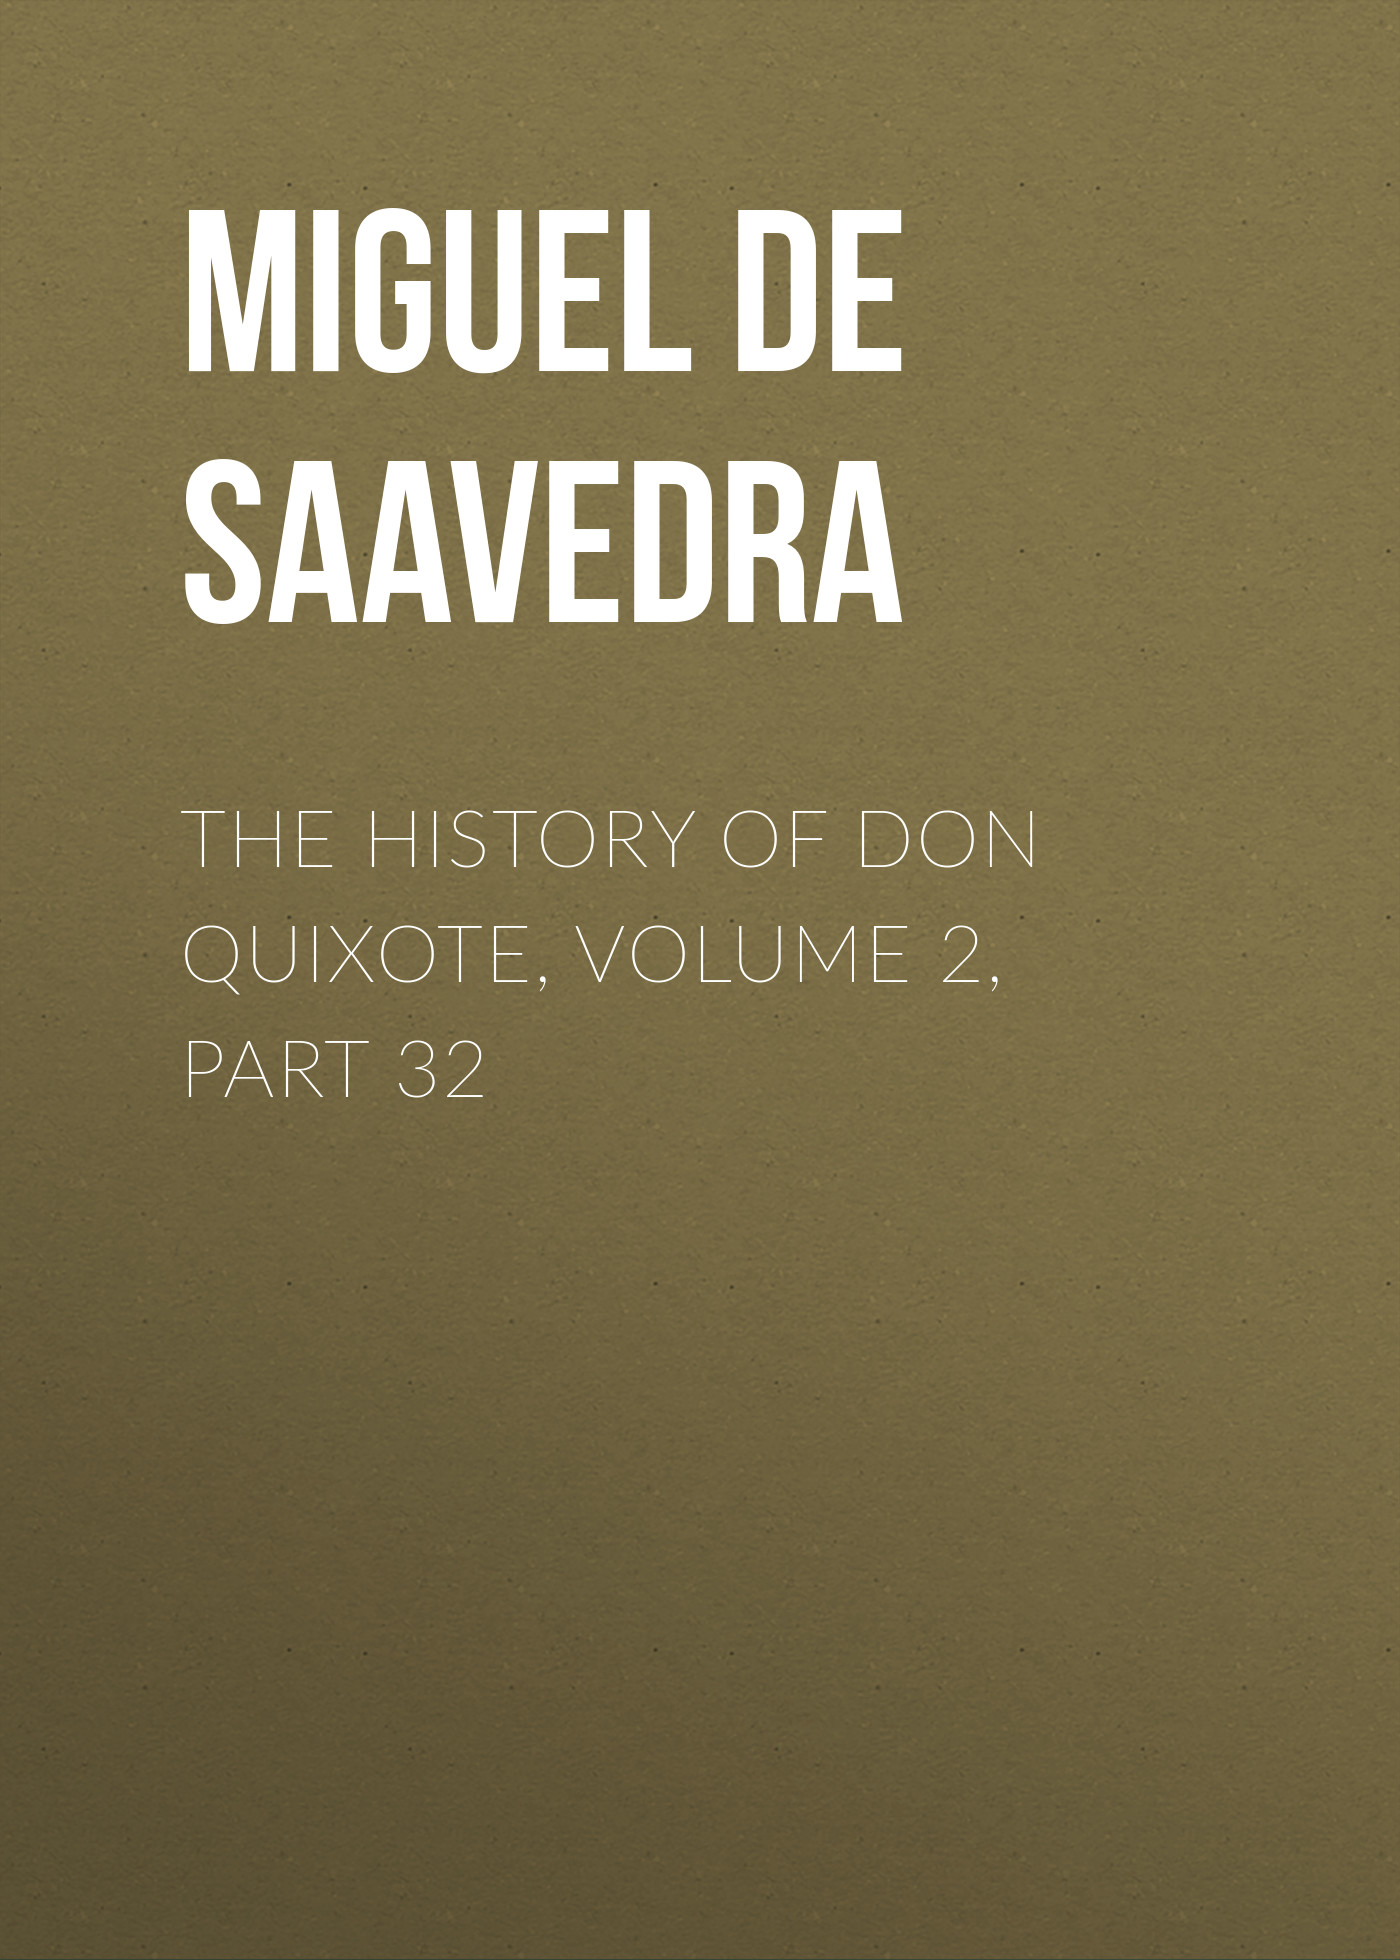 Мигель де Сервантес Сааведра The History of Don Quixote, Volume 2, Part 32 rasmus björn anderson the heimskringla a history of the norse kings volume 5 part 2